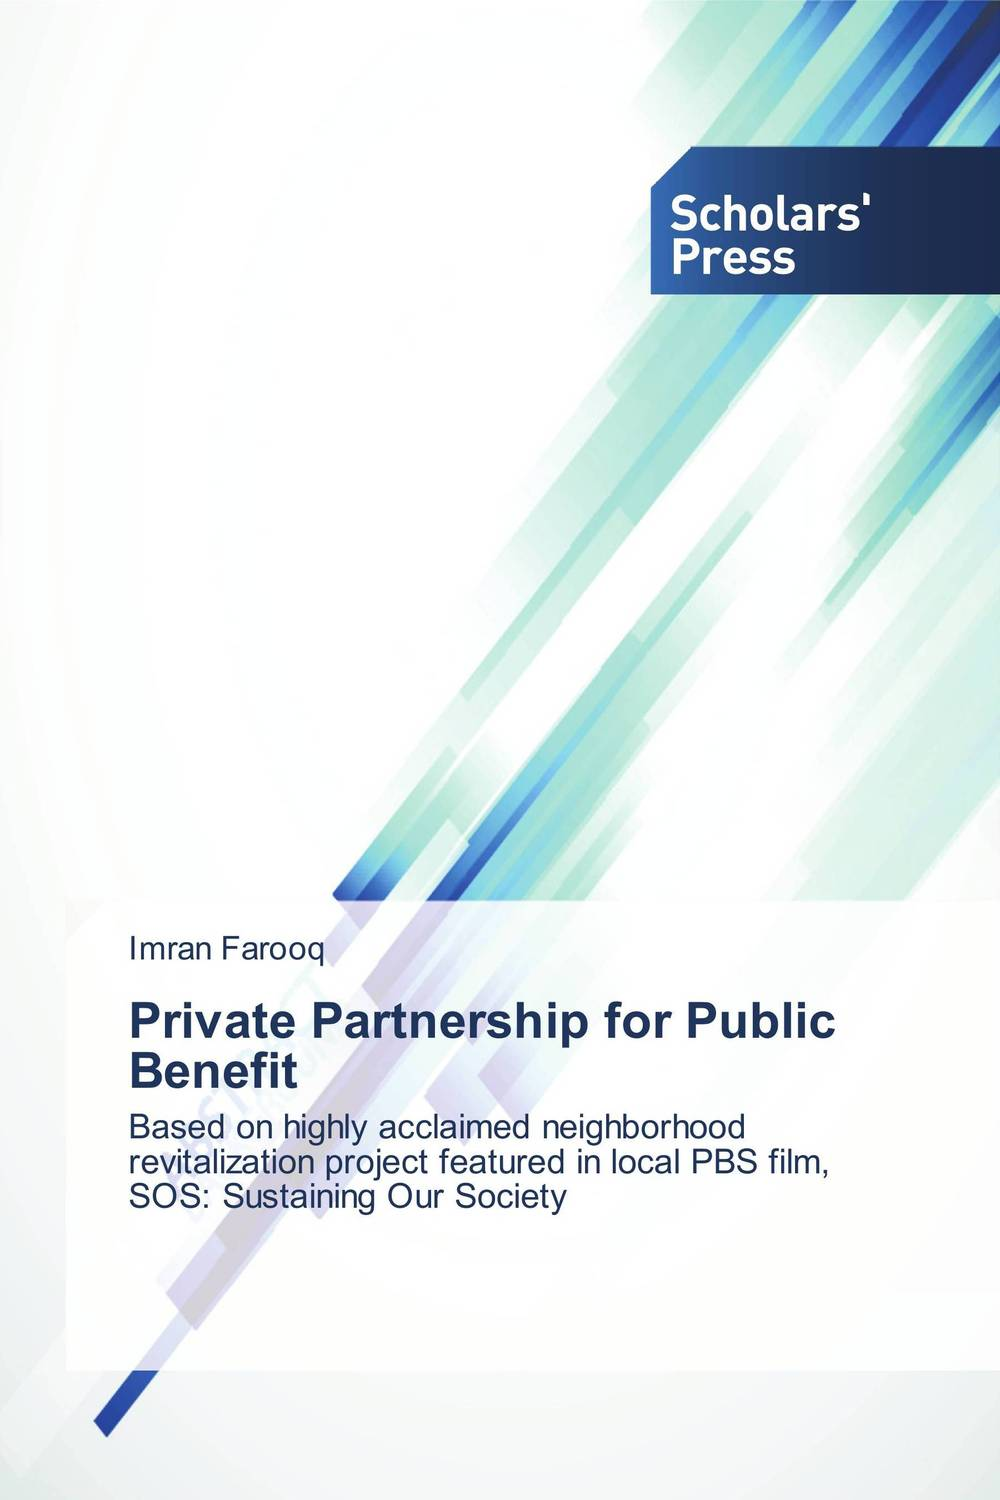 Private Partnership for Public Benefit presidential nominee will address a gathering